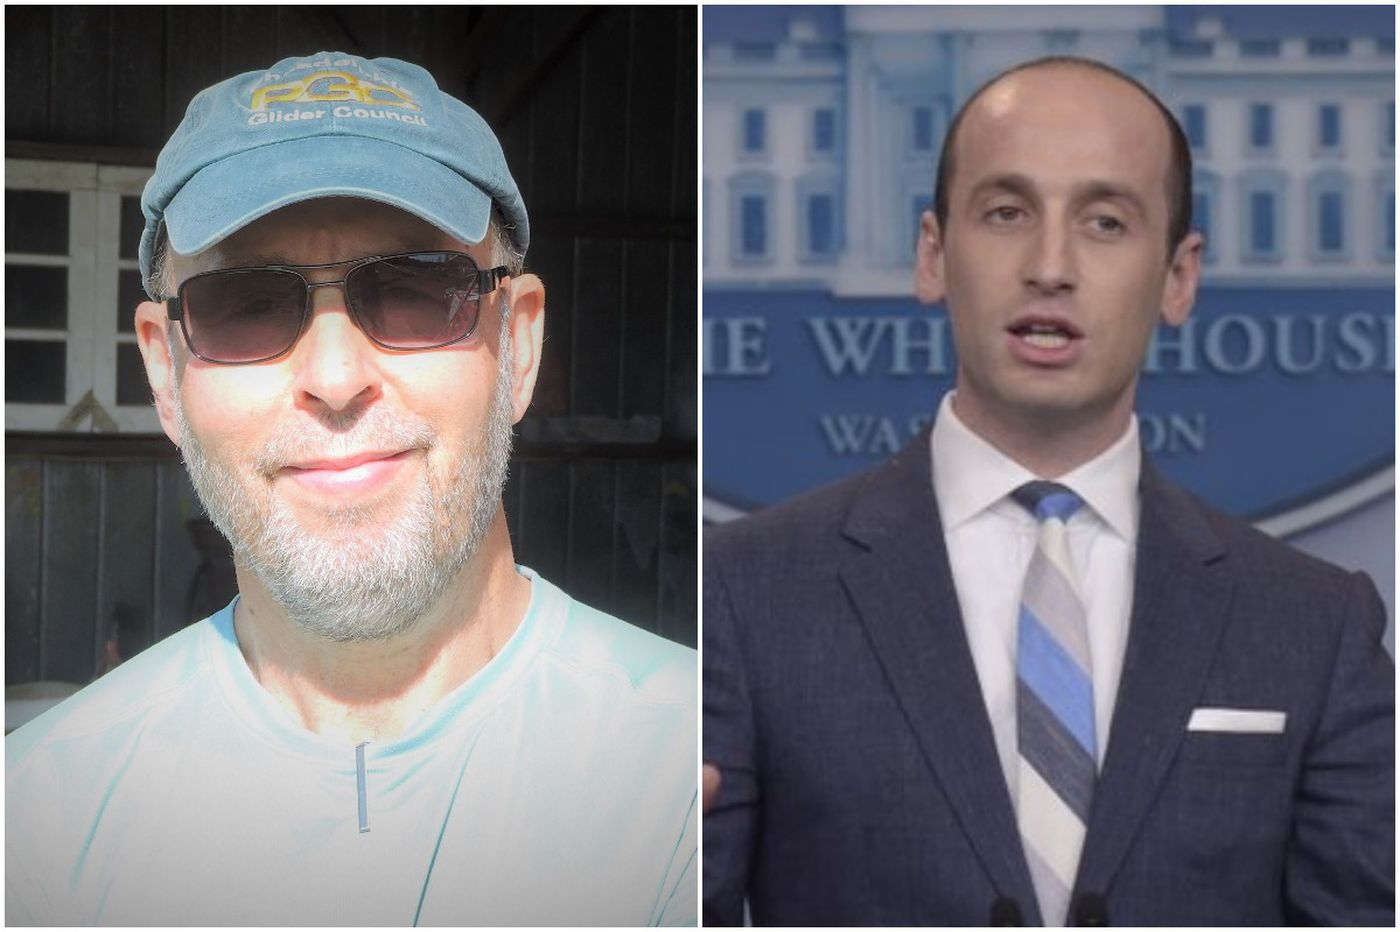 Why Stephen Miller's Philly-area uncle called his nephew an 'immigration hypocrite'